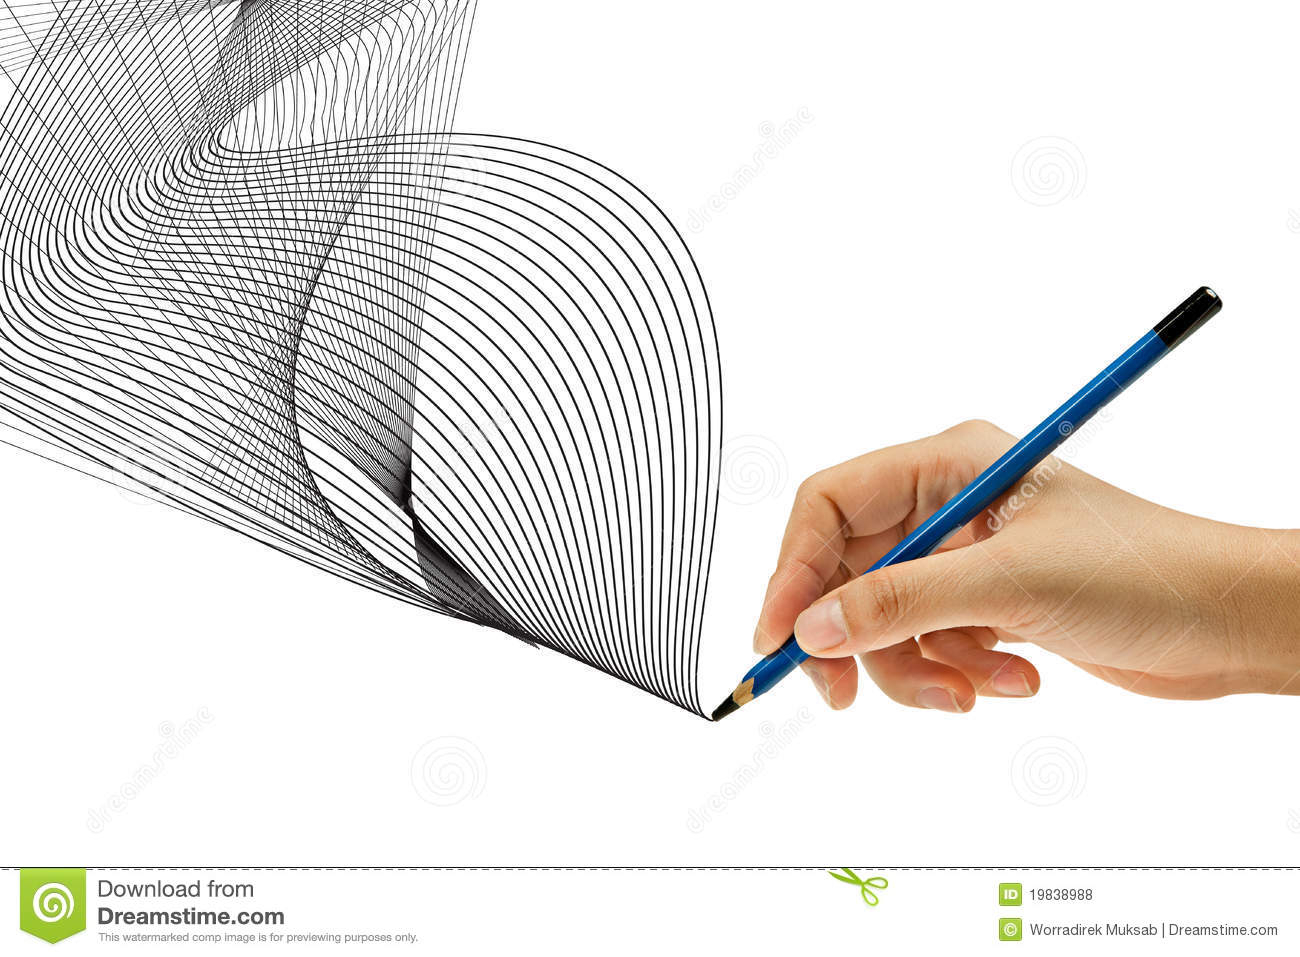 1300x957 Hand With Pencil Drawing Drawing With Pencil In Hand Stock Photo